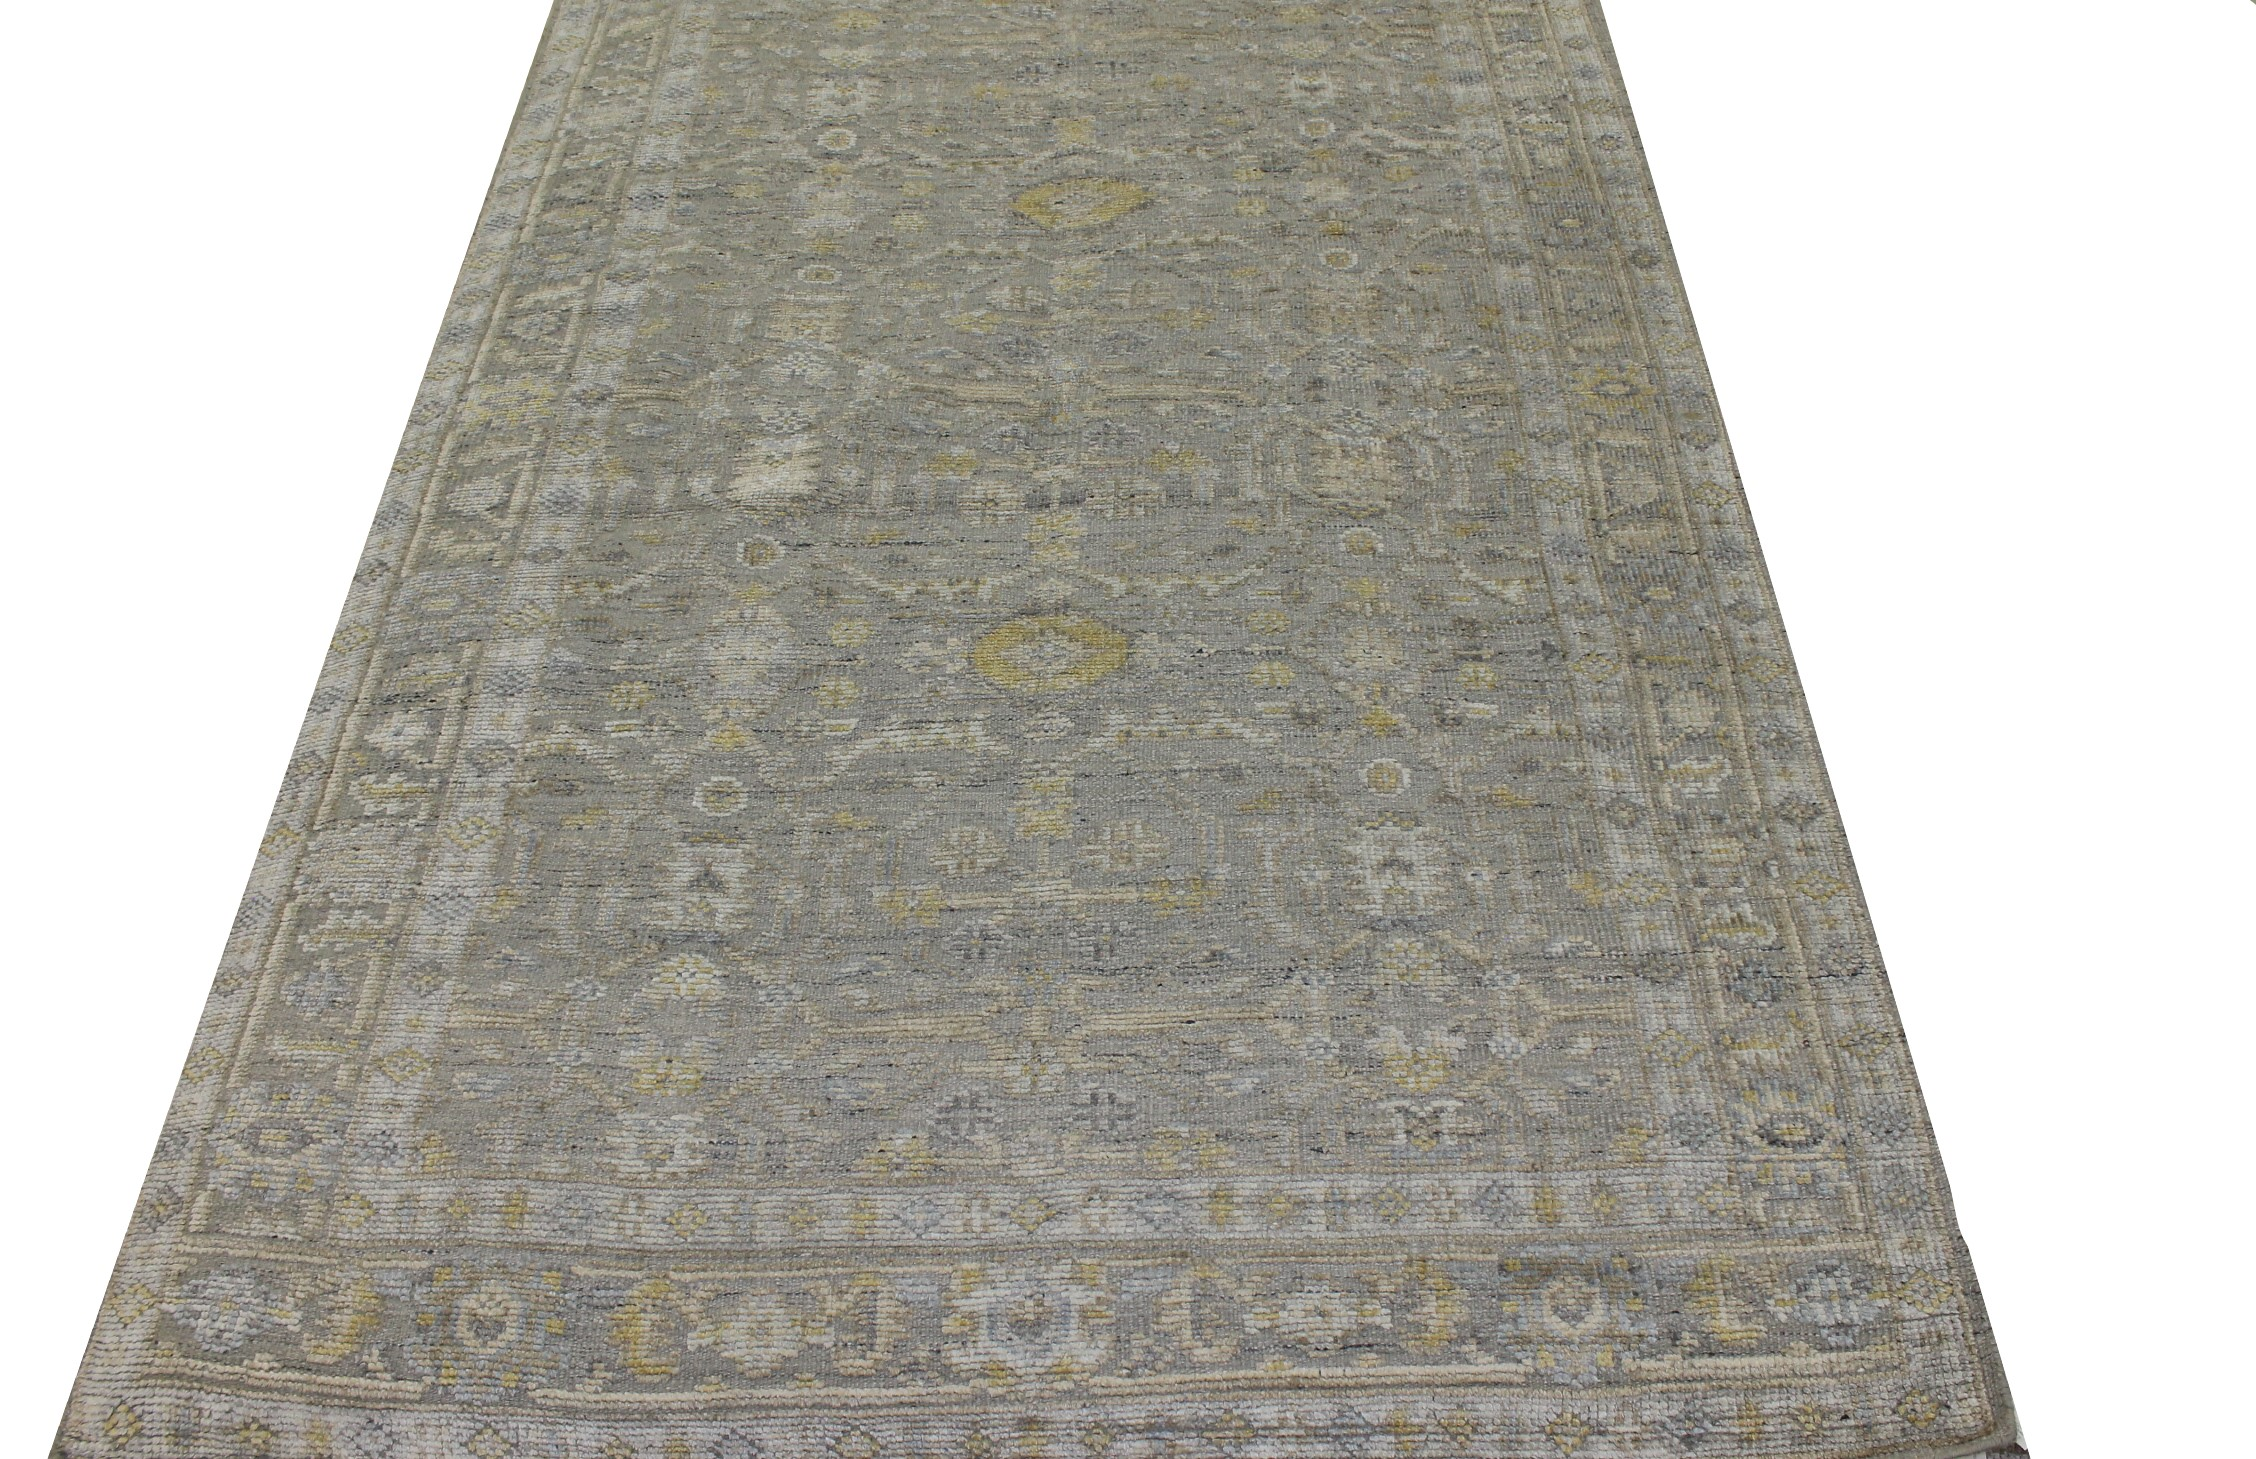 6x9 Oushak Hand Knotted Wool & Viscose Area Rug - MR023503